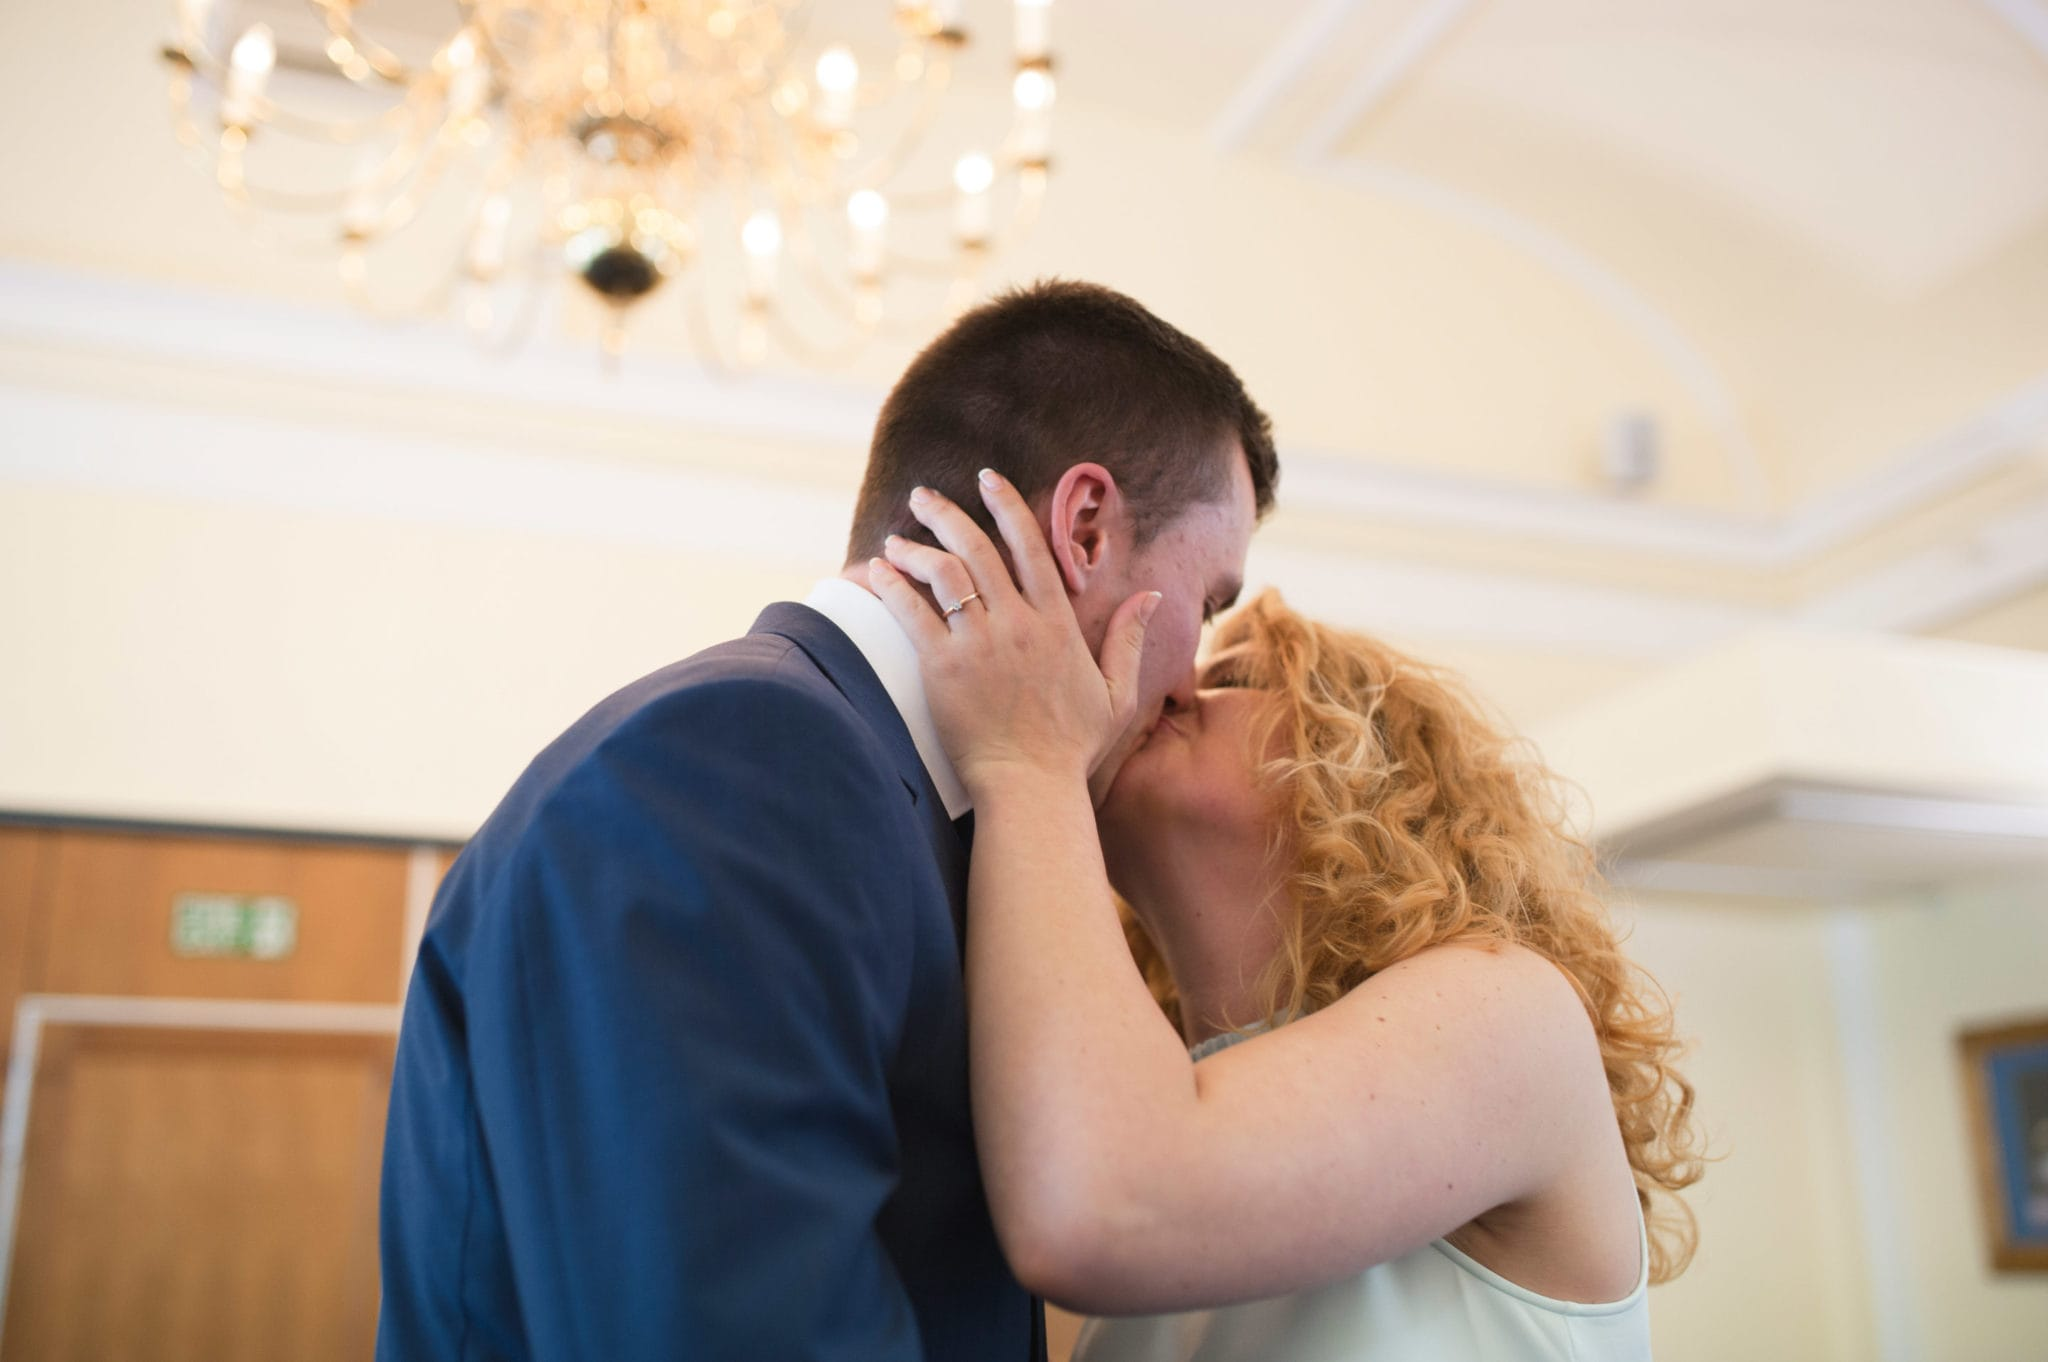 bride and groom Bromley on Bow Registry office, London UK Wedding photography ceremony room with the guest , first kiss